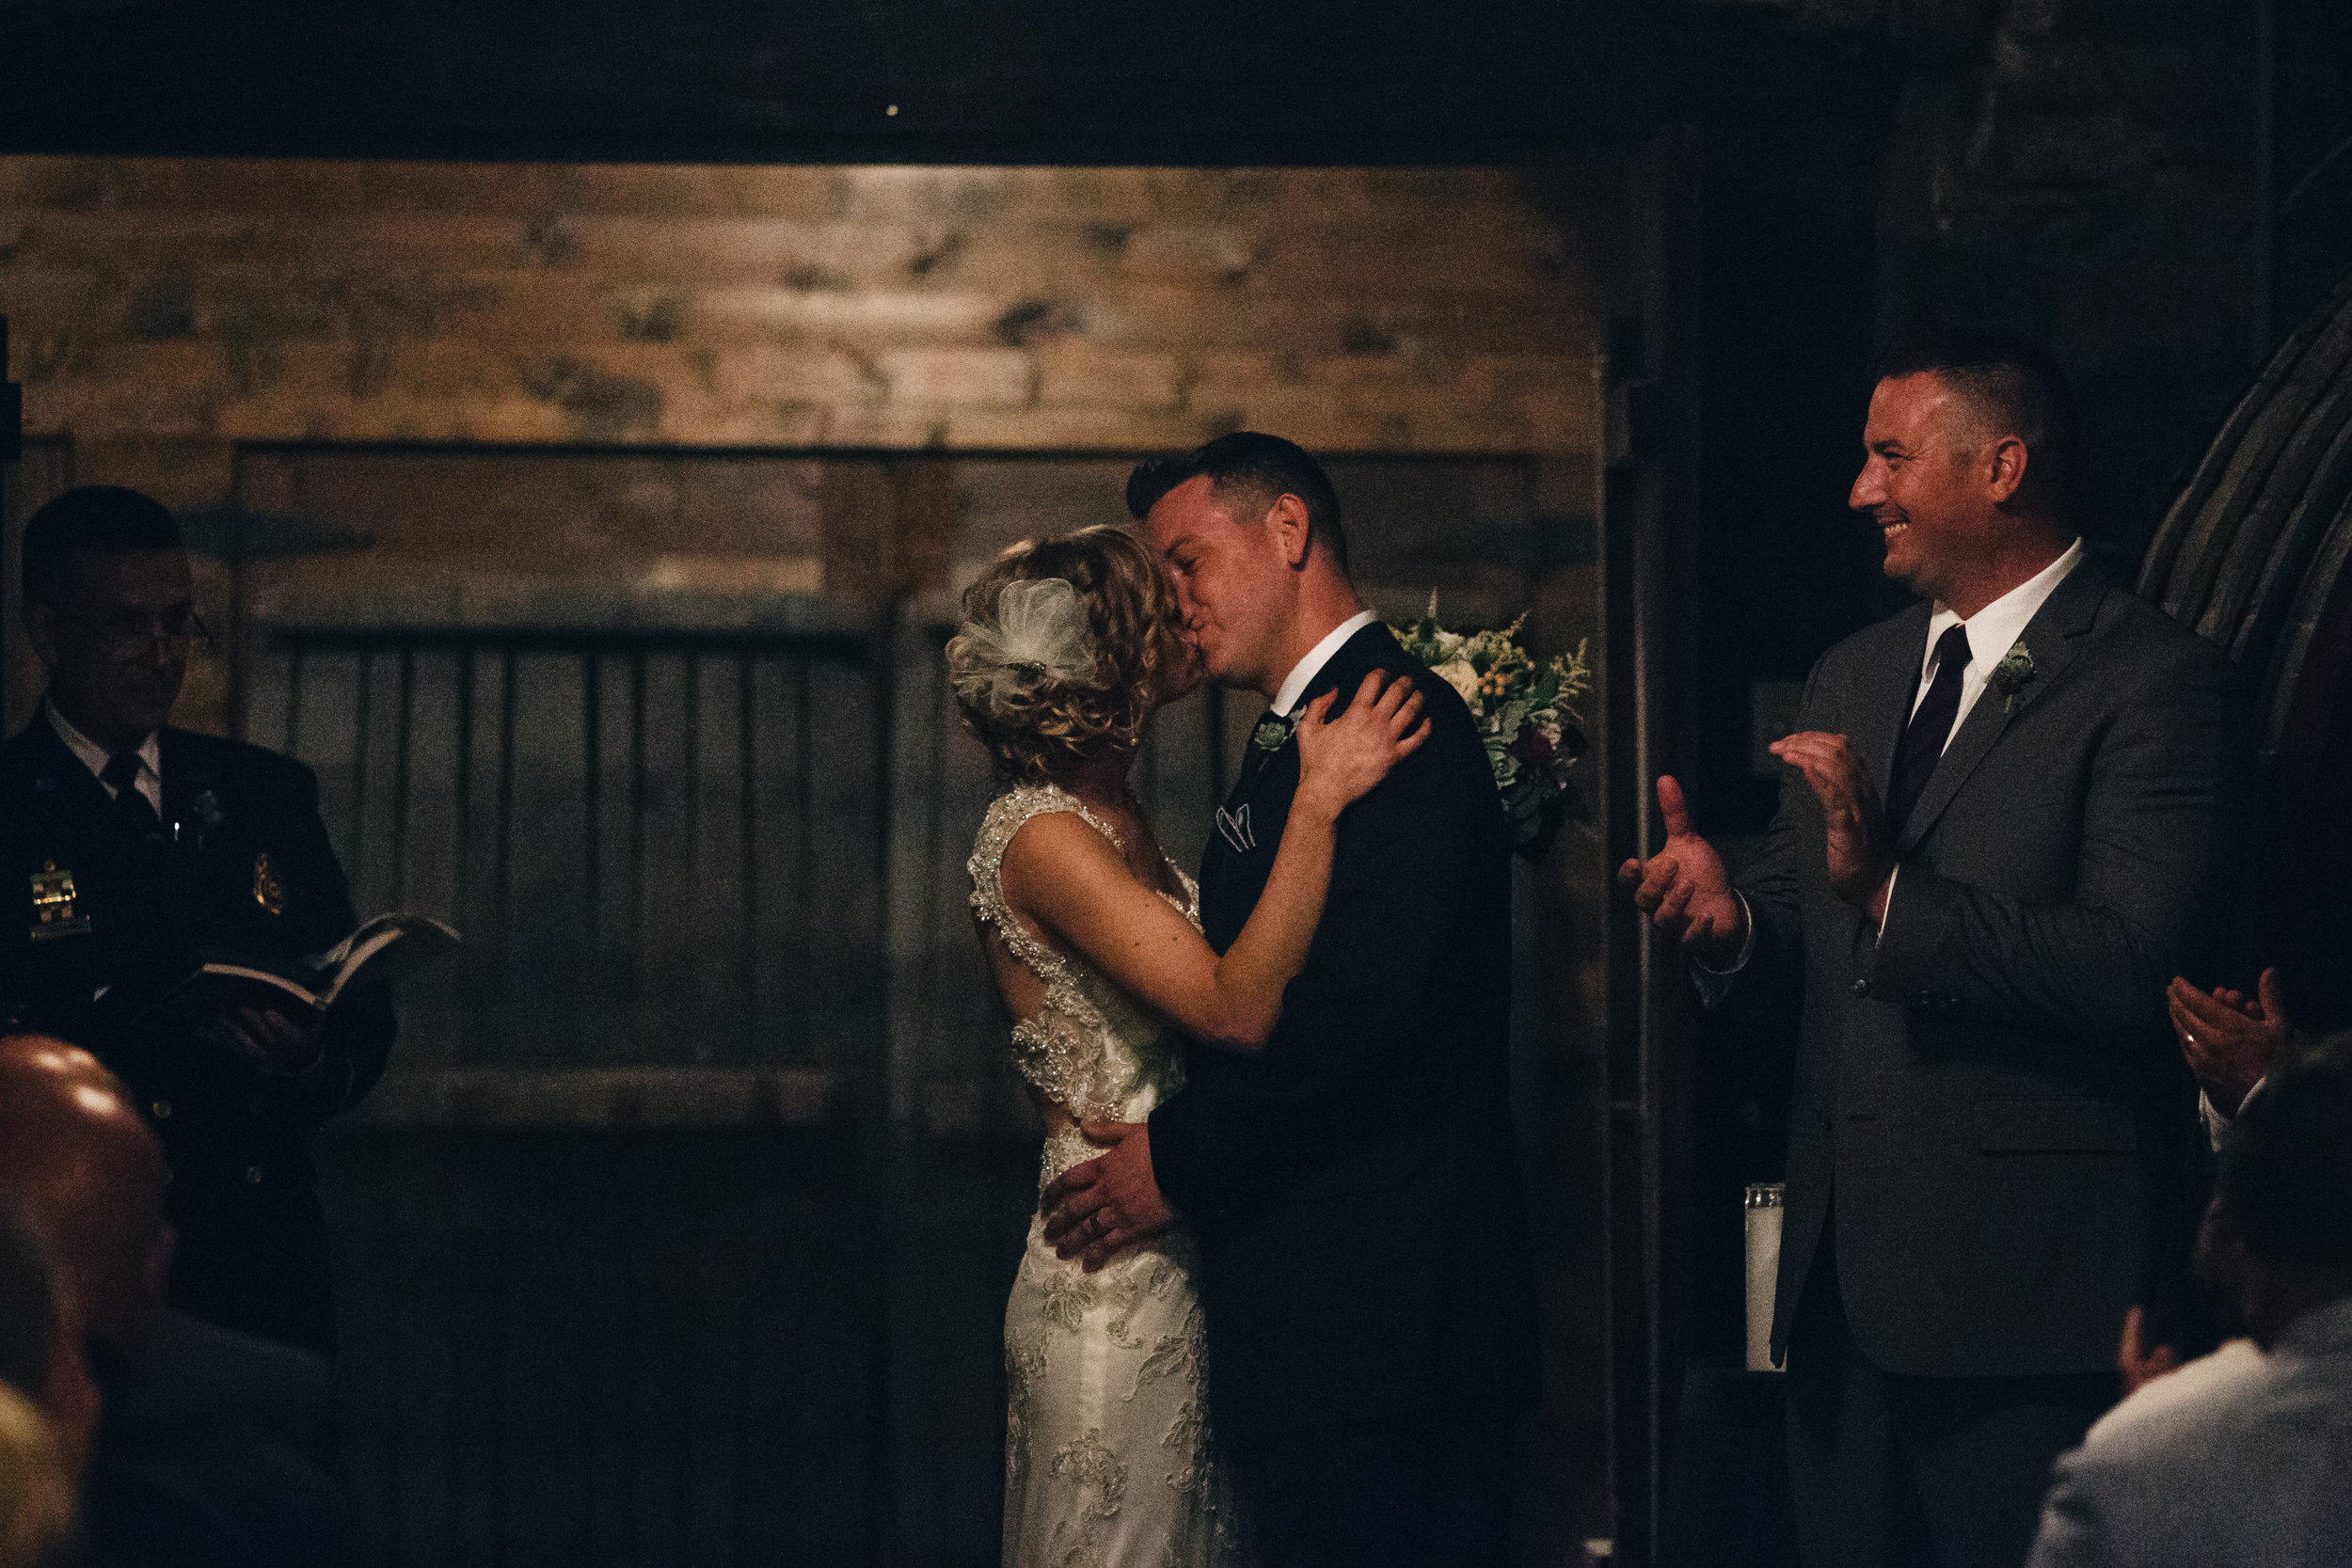 Bride and groom kiss at wedding ceremony in Mon Ami.